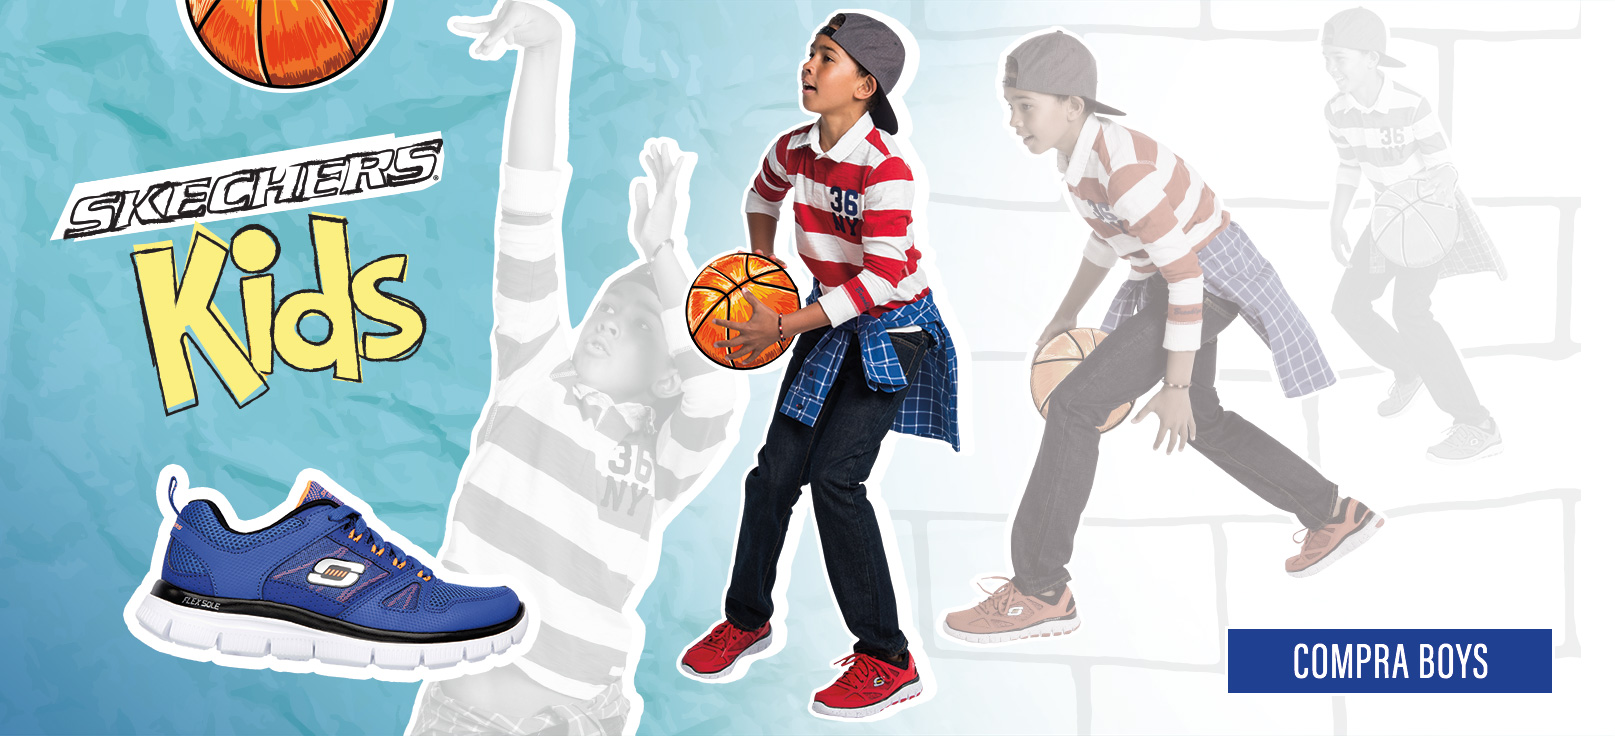 Shop for Boys Skechers Shoes on Skechers.com including S-Lights, Memory Foam, Athletic and Casual shoes.  Sizes for Toddler, Pre School and Grade School, perfect for Back to School season including uniform shoes.